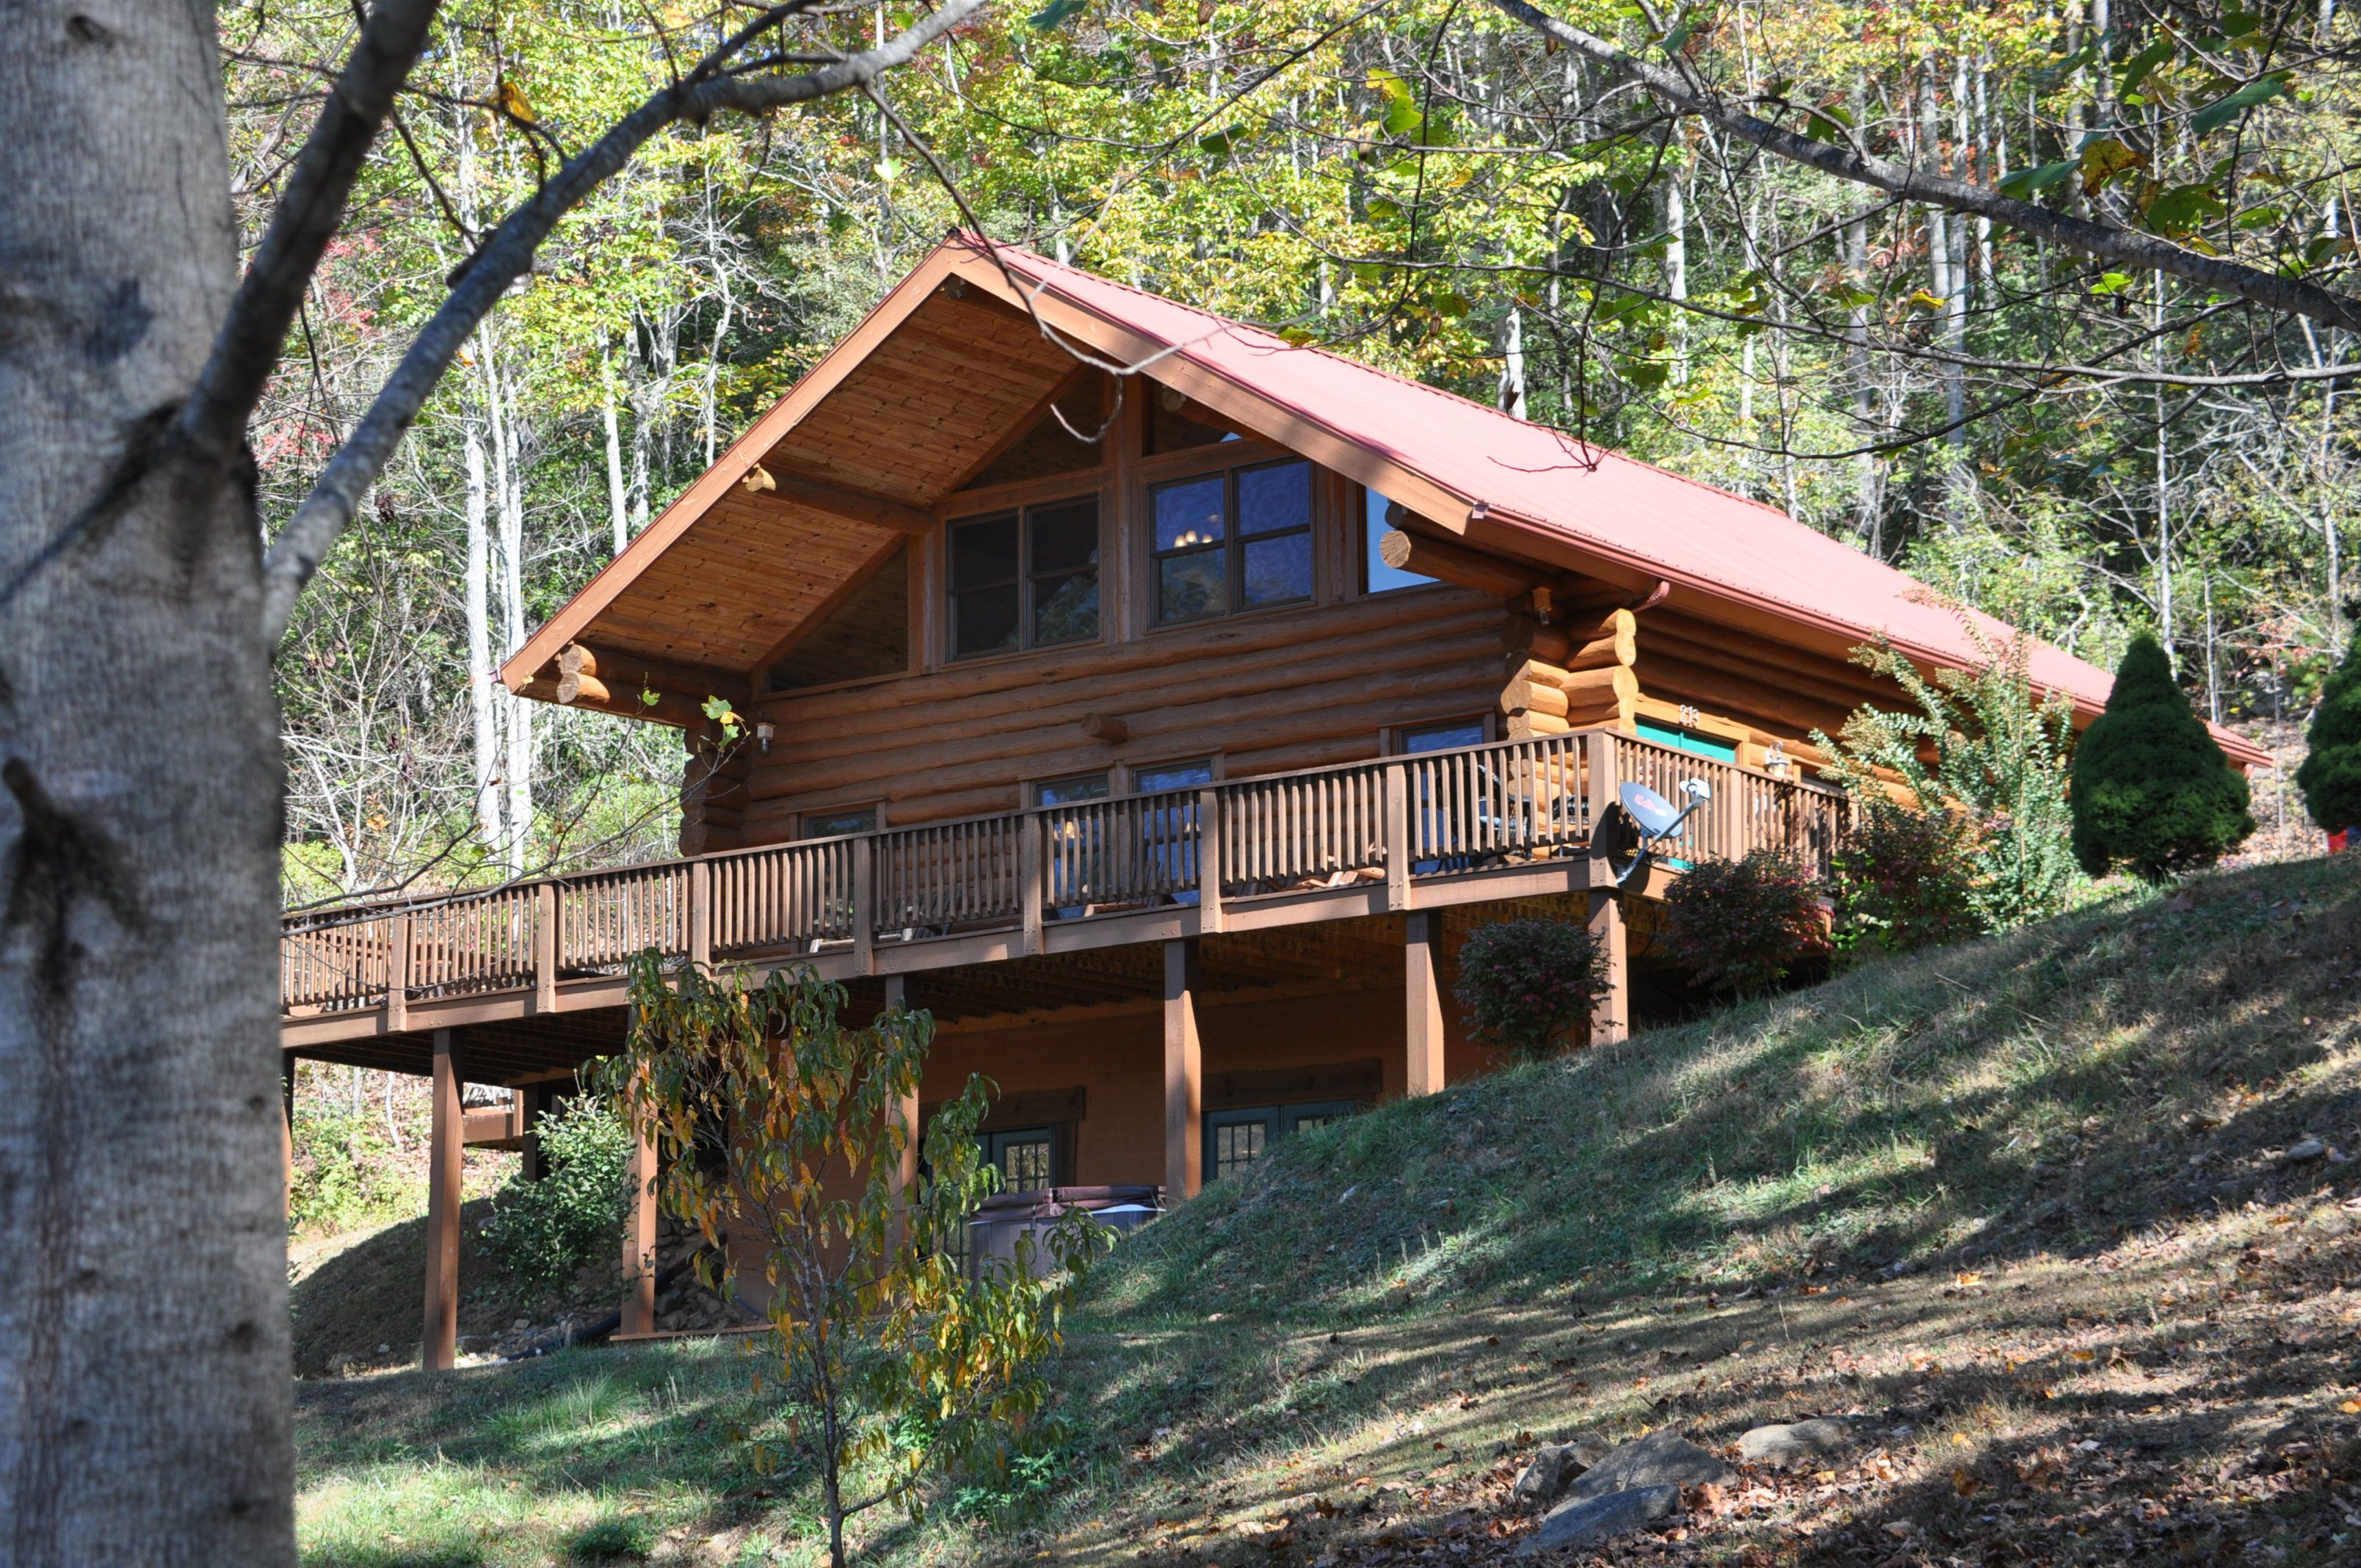 nc ridge in mountains rentals cabin rental cheap state blue pet brevard parks north carolina friendly cabins asheville